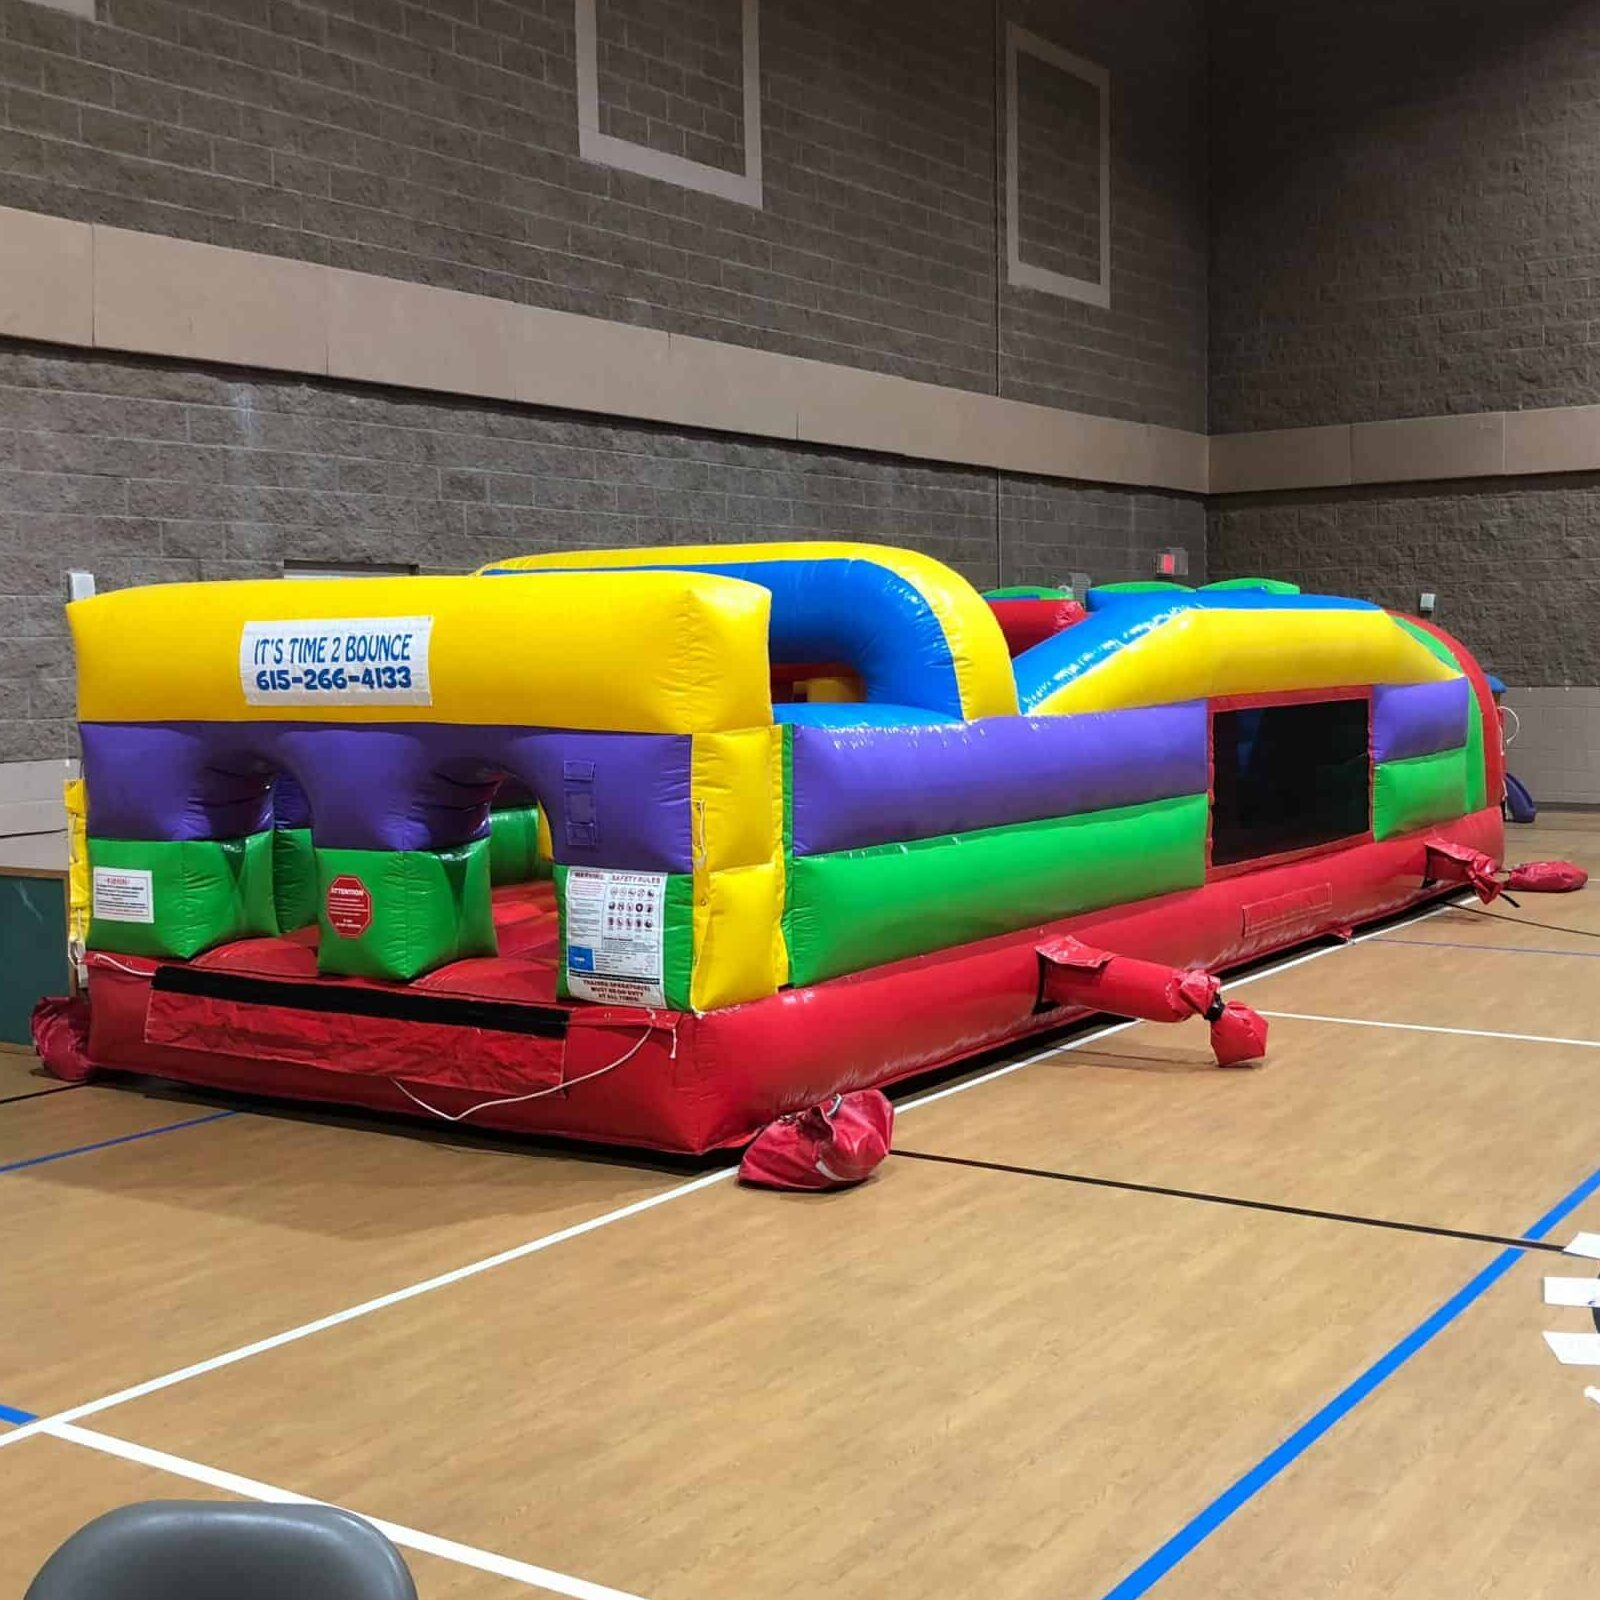 7 Element Obstacle Course Rental